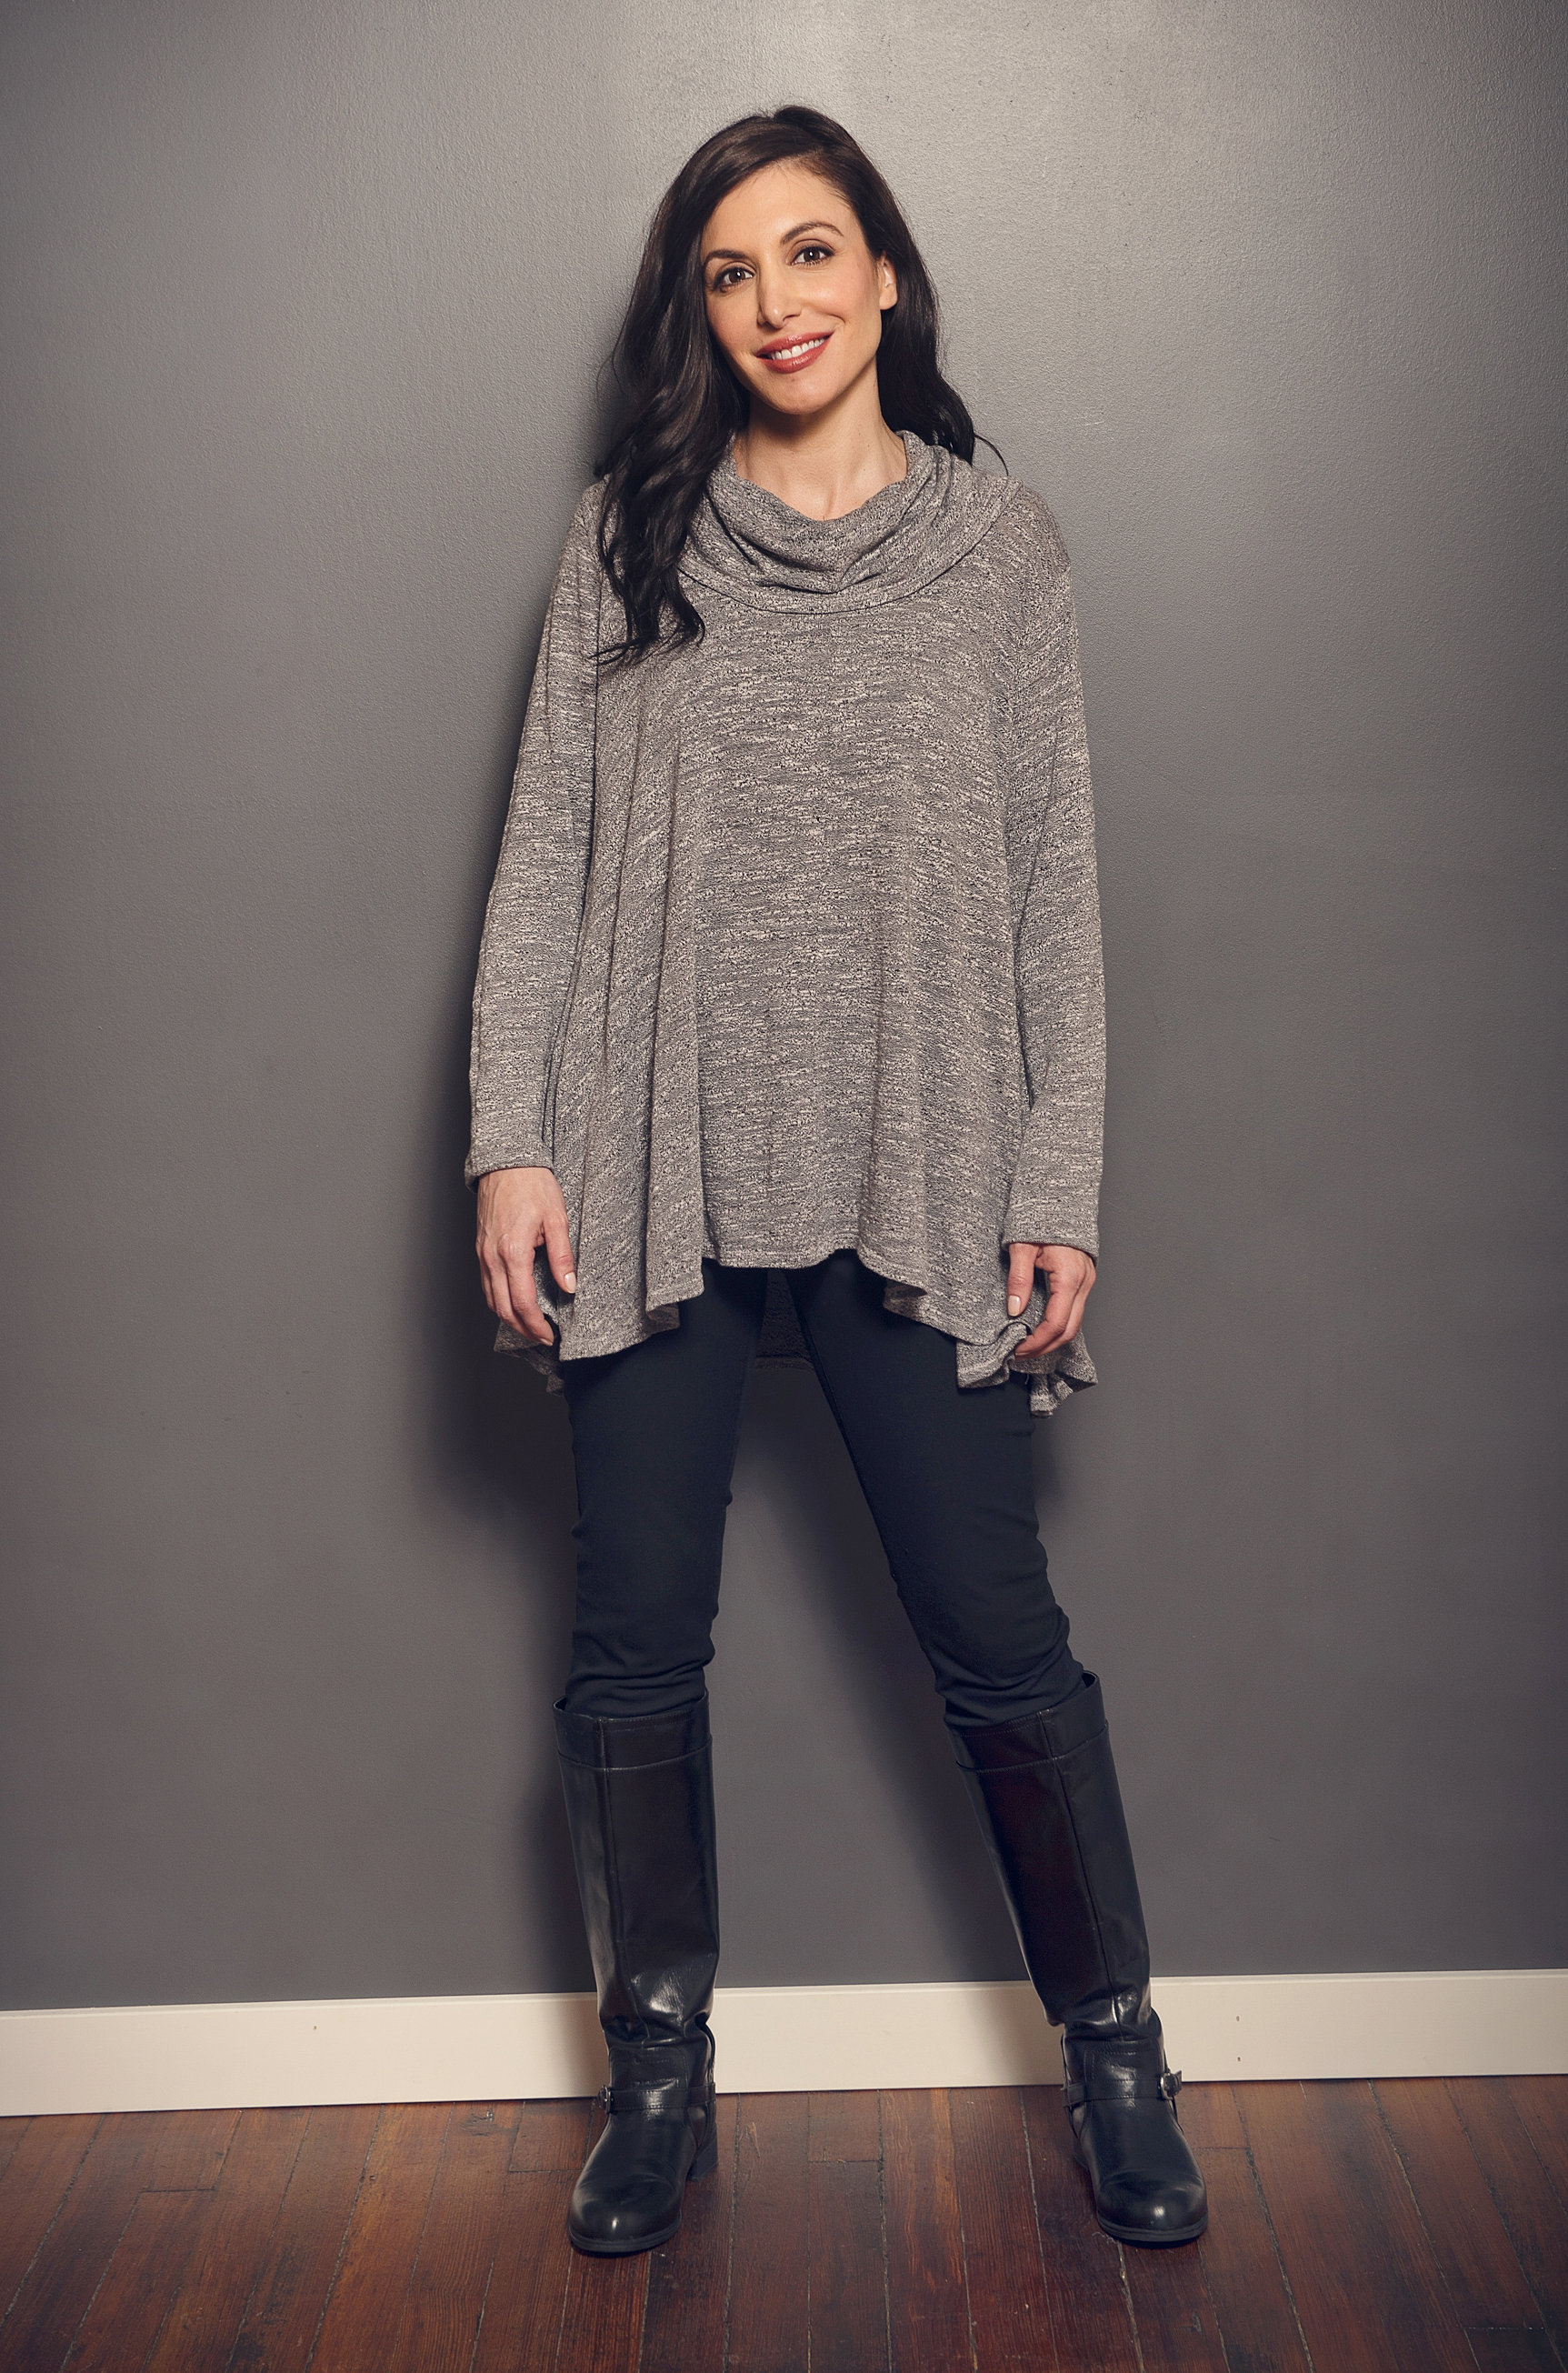 Knit Clothing For Women